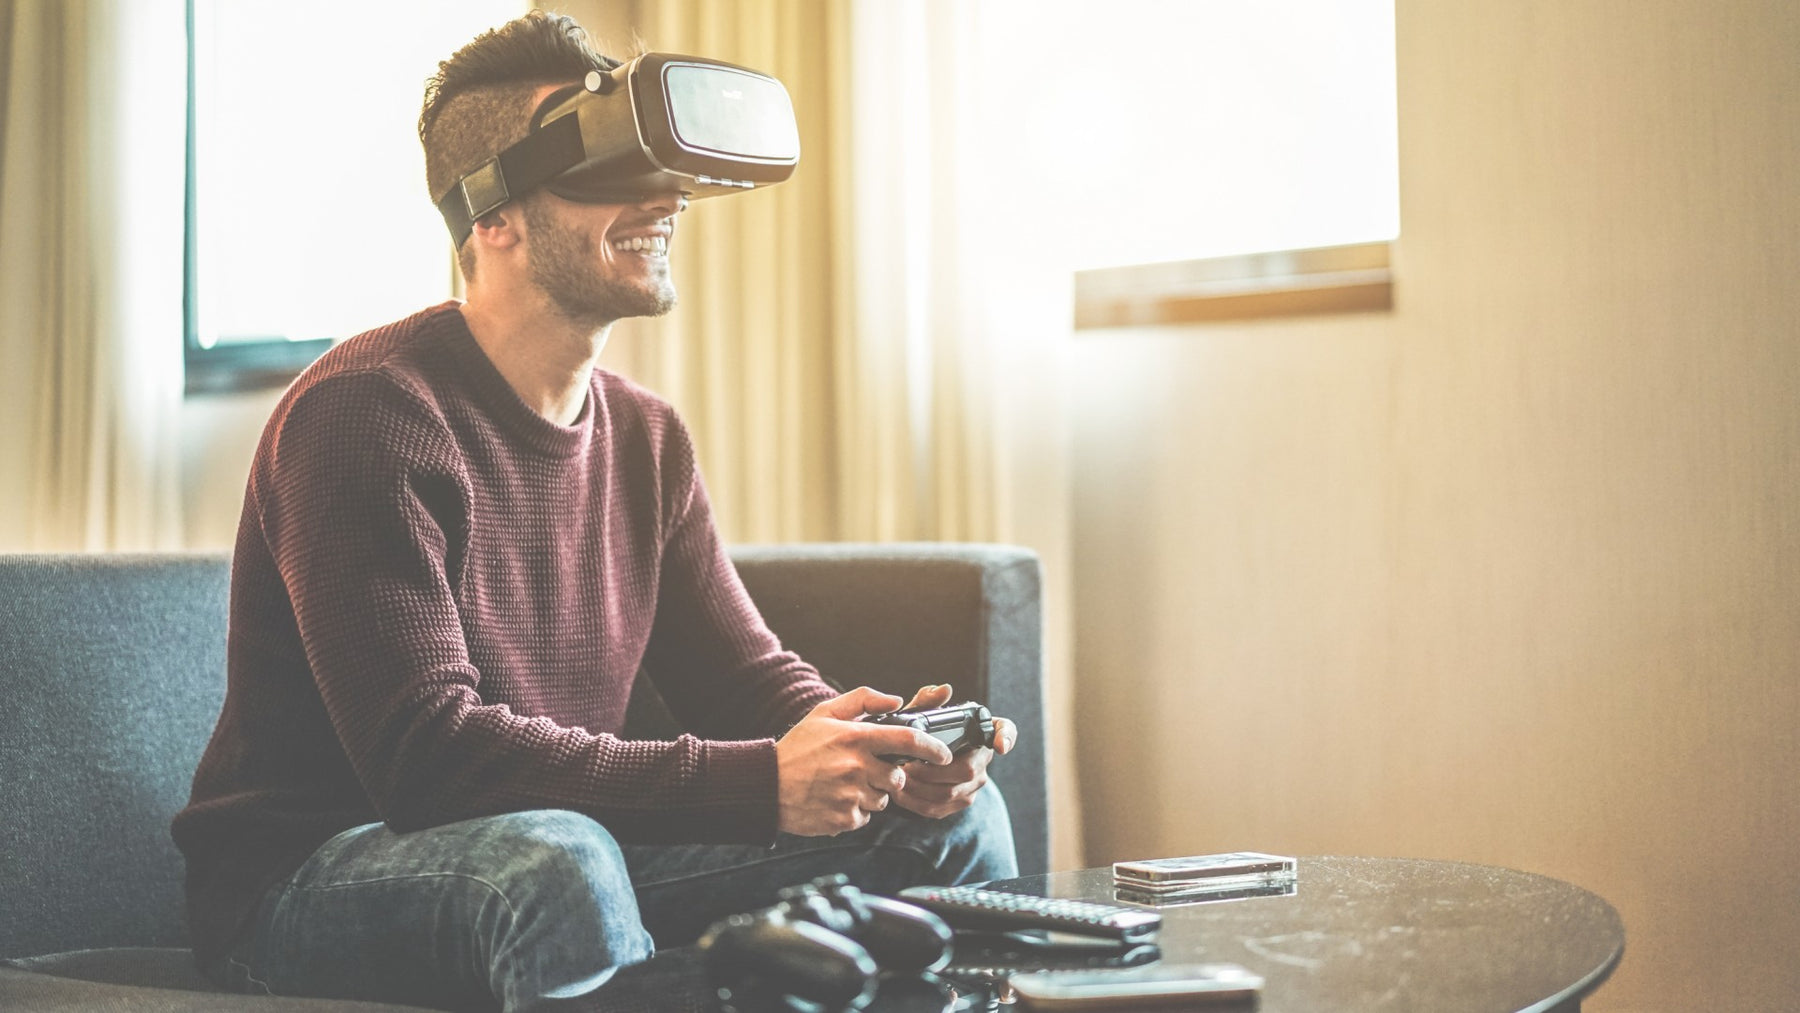 Like Video Games? You May Actually Have a New Gaming Disorder